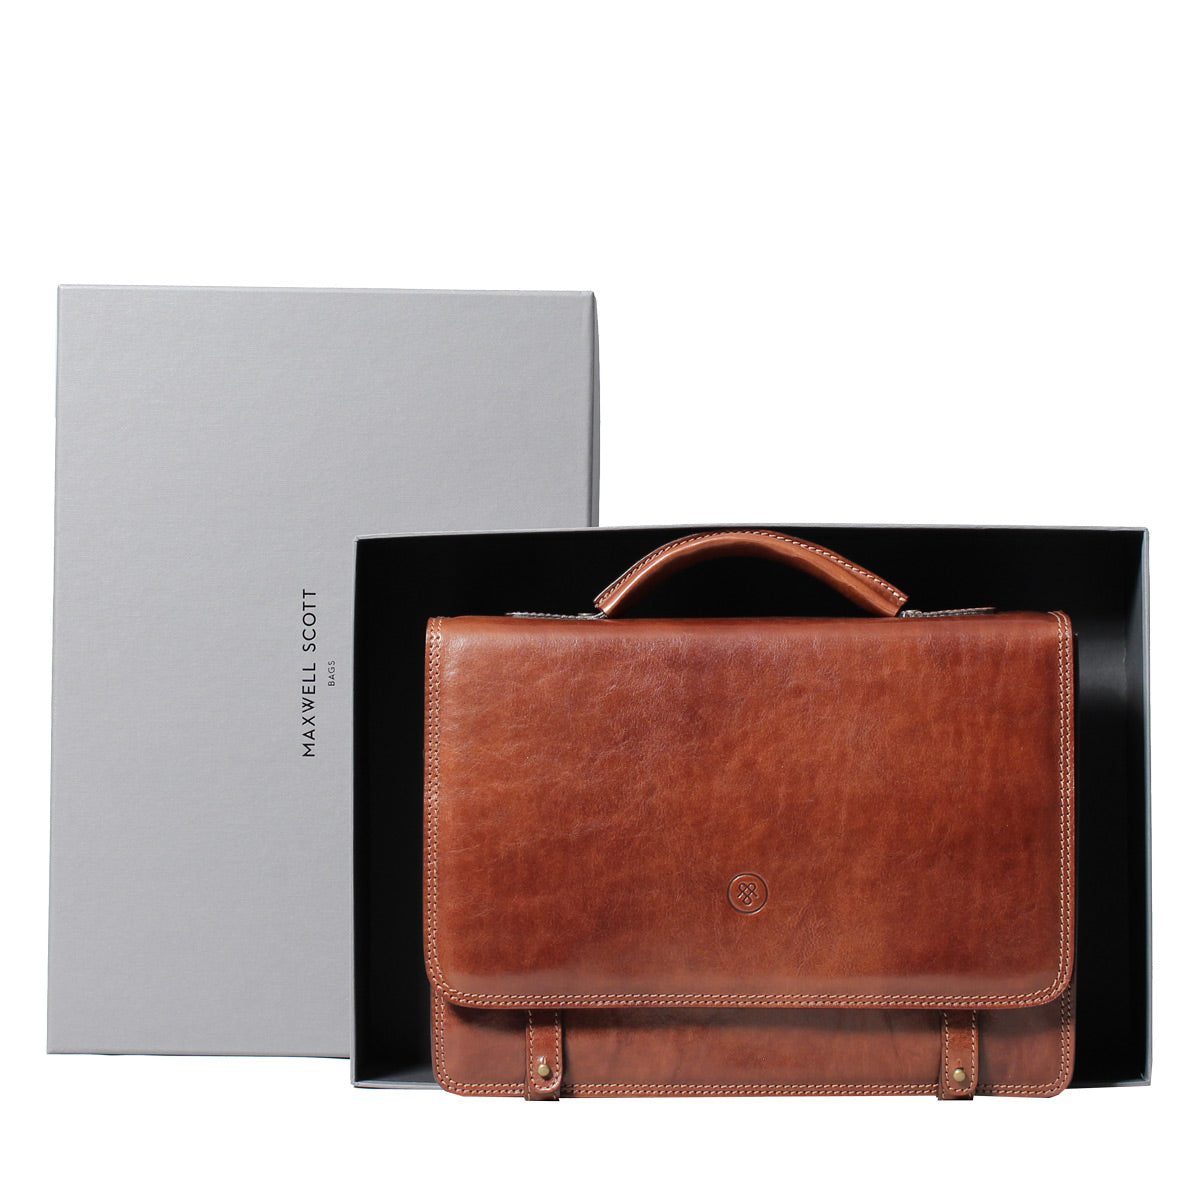 Image 7 of the 'Battista' Brown Veg-Tanned Leather Satchel Briefcase